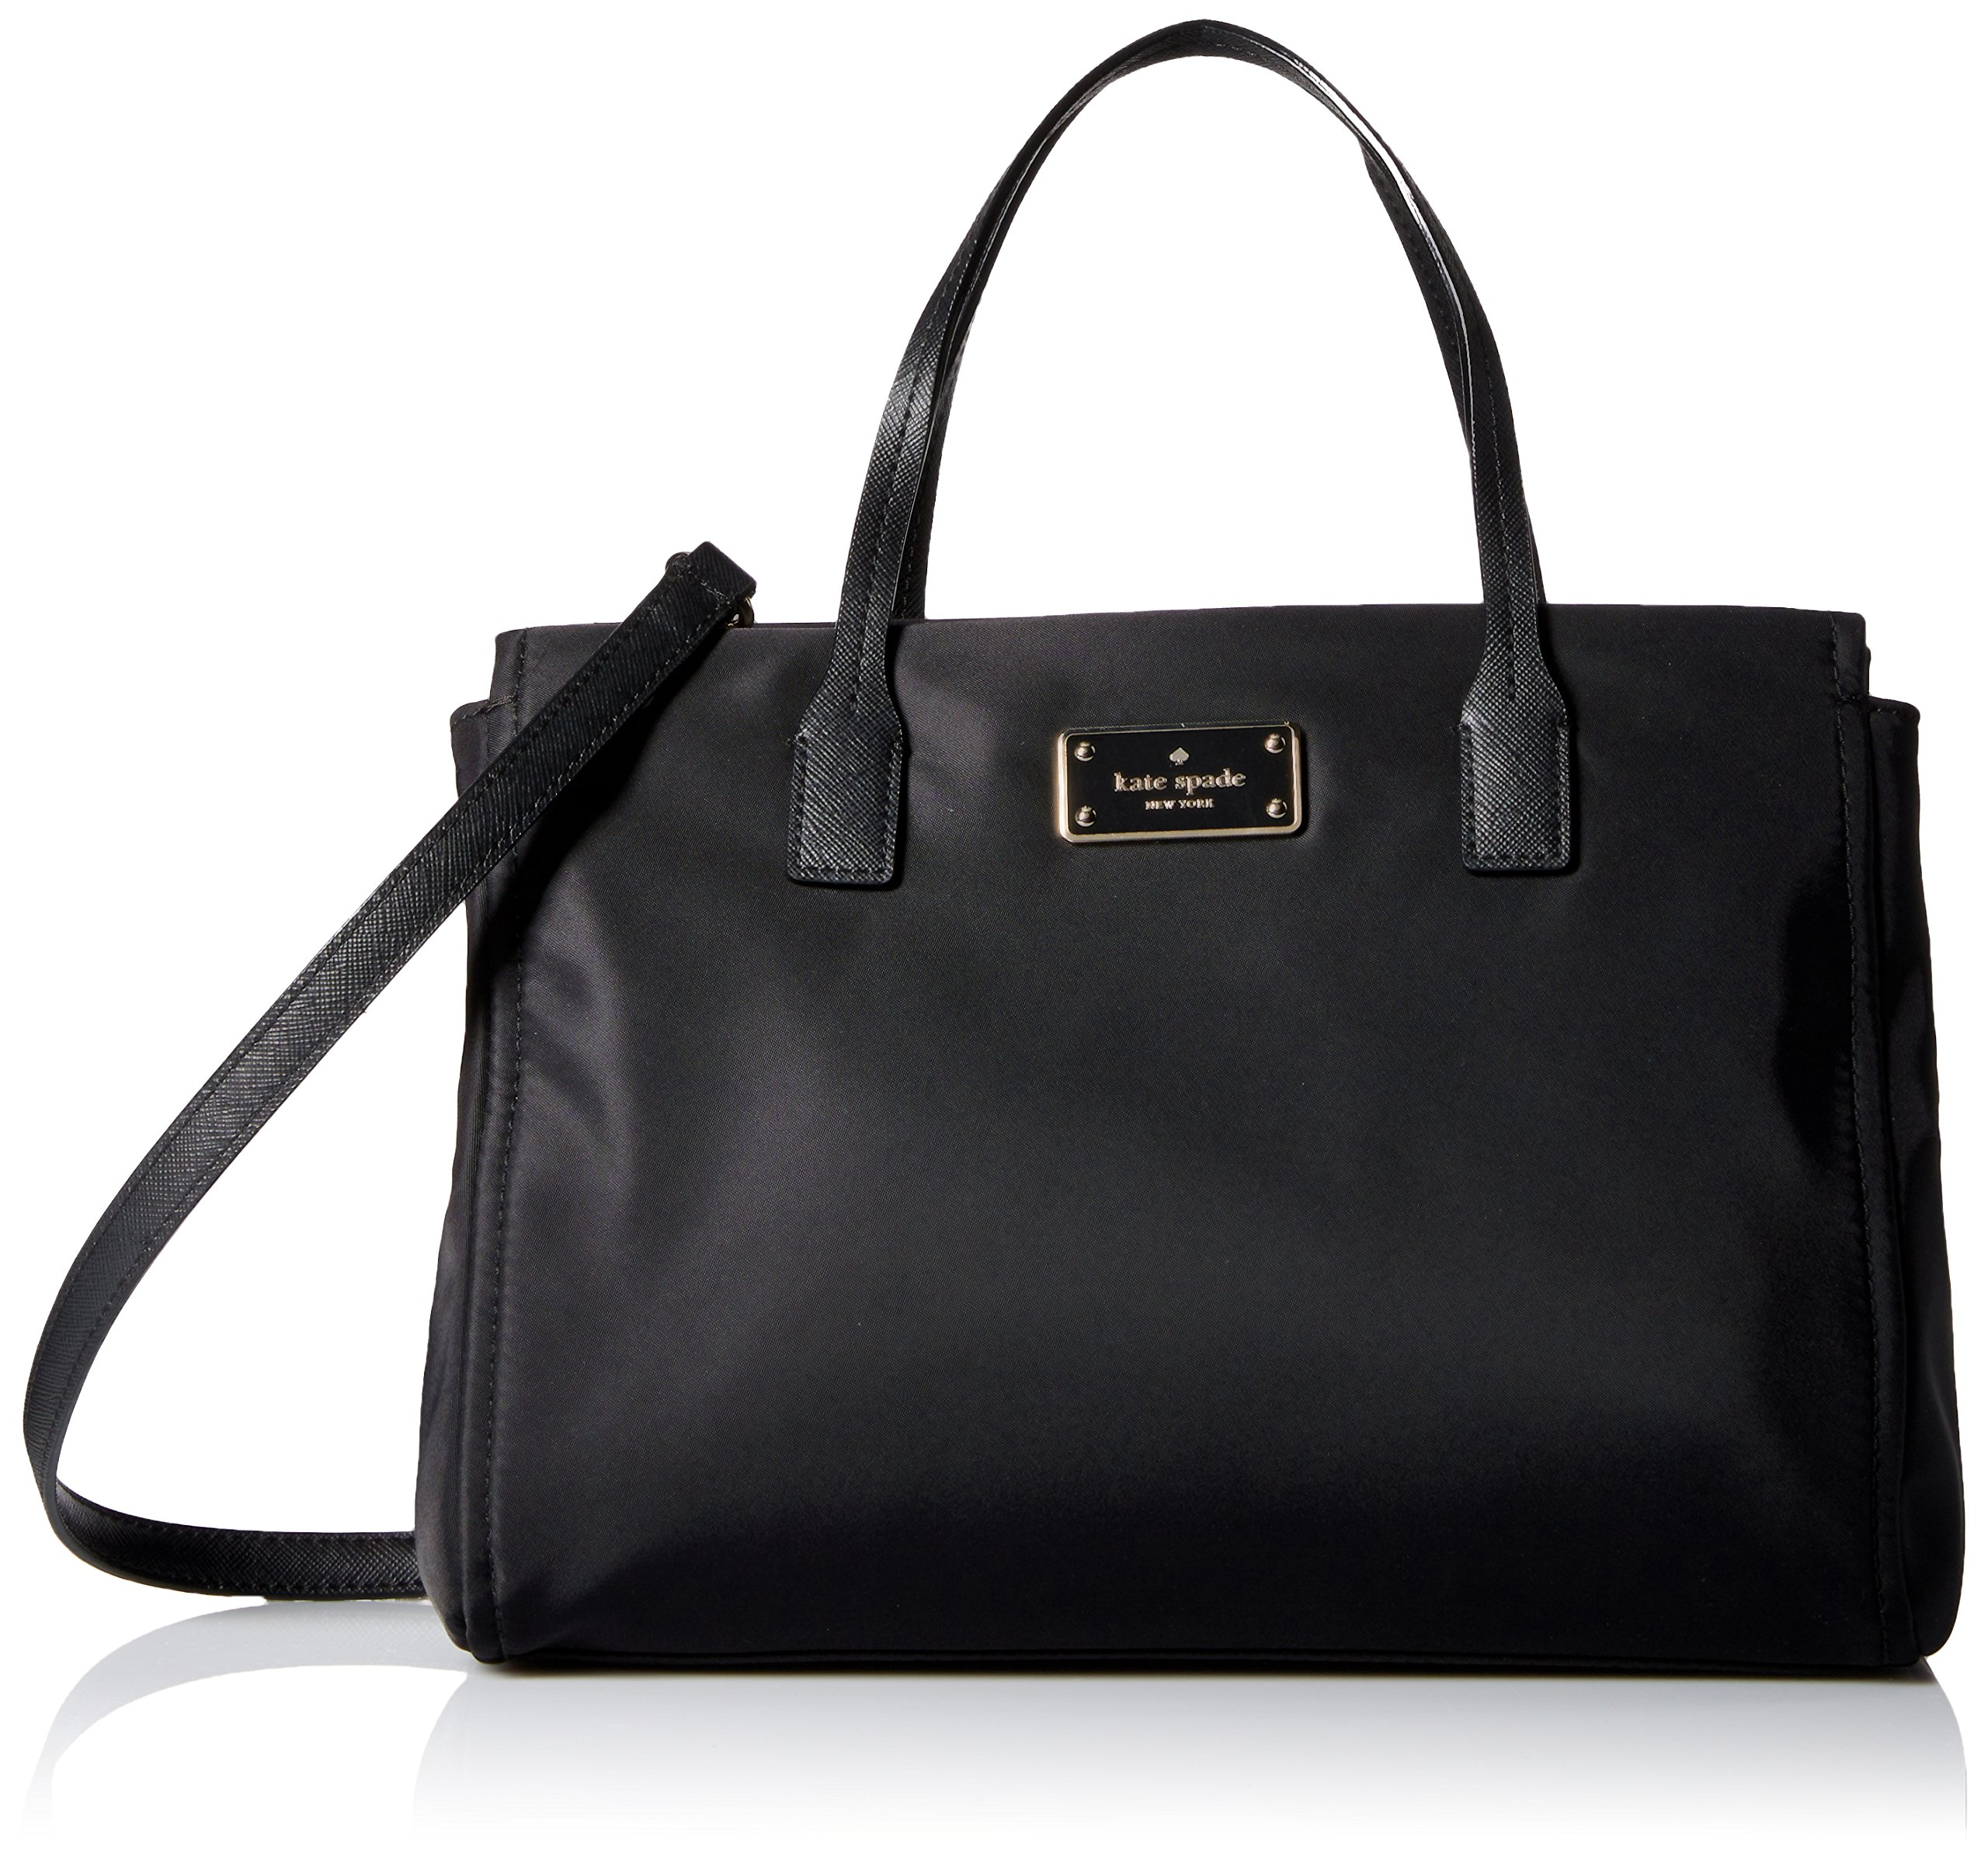 Kate Spade Small Loden Crossbody - Black